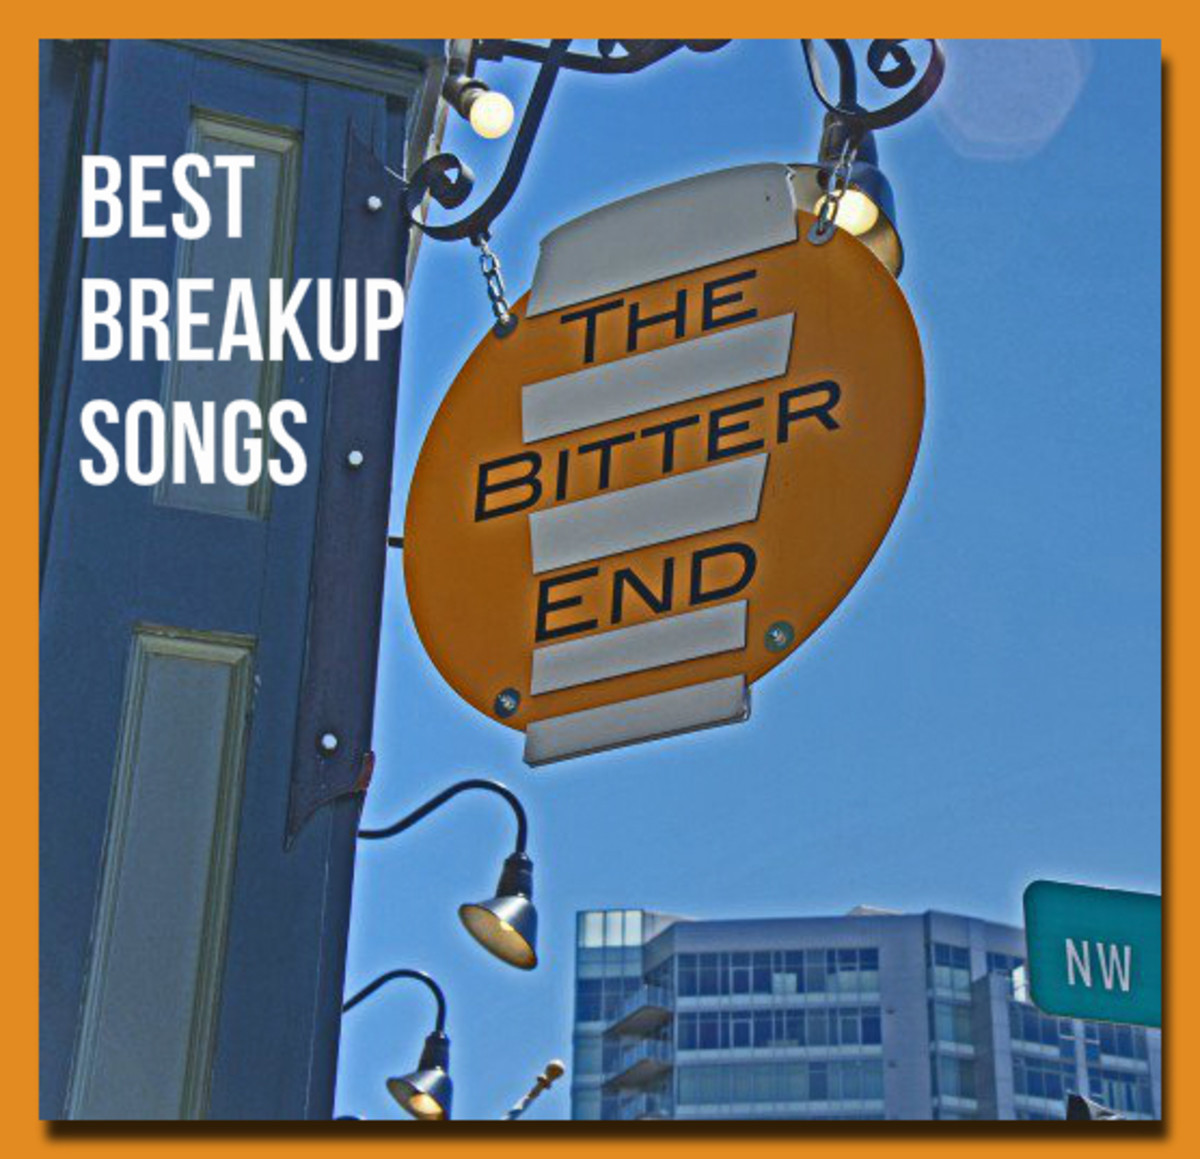 84 Songs About Break Ups, Heartbreak and Divorce